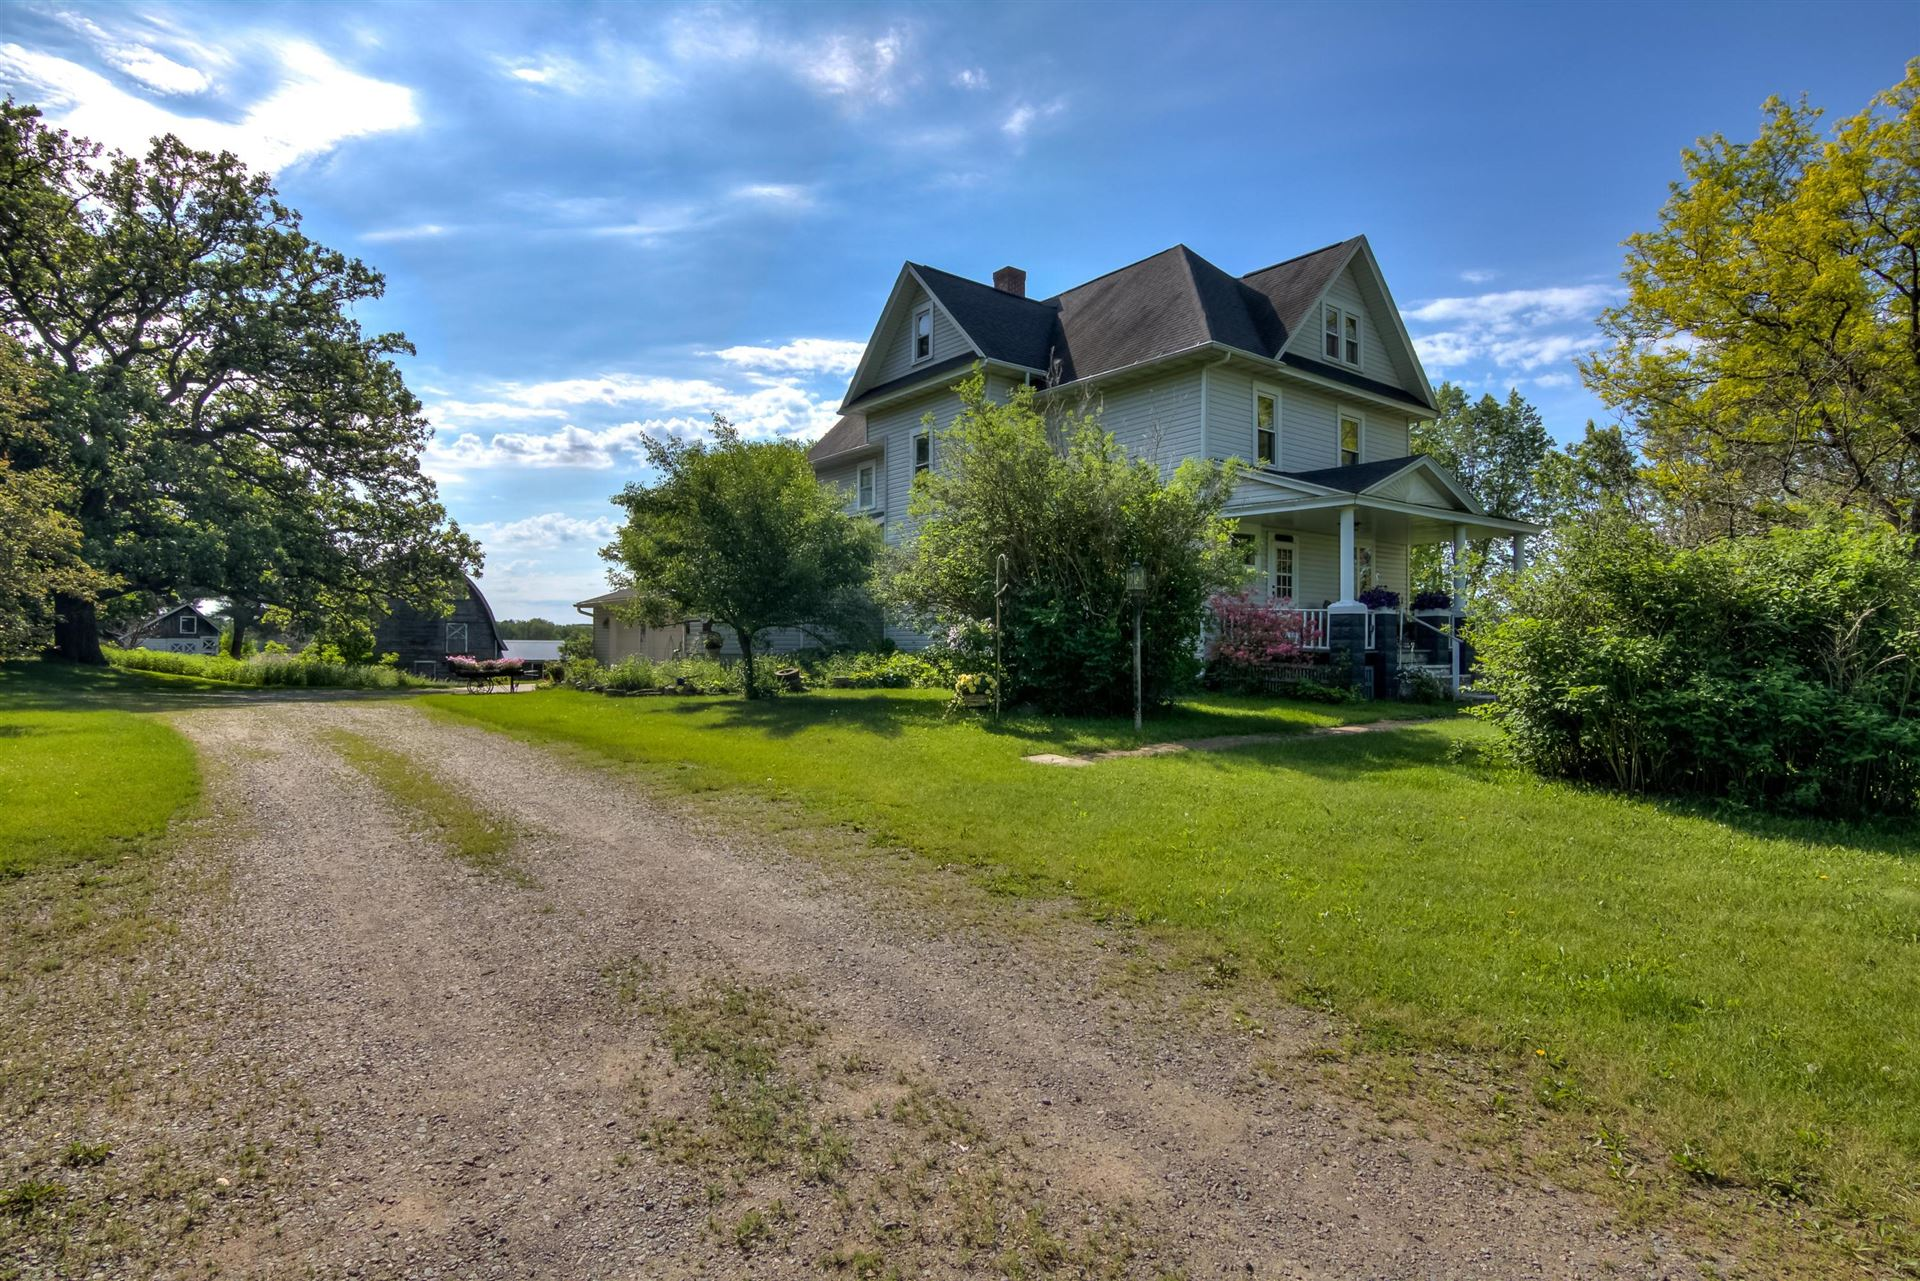 N40496 Christopherson Rd, Osseo, WI 54758 - MLS#: 1732625